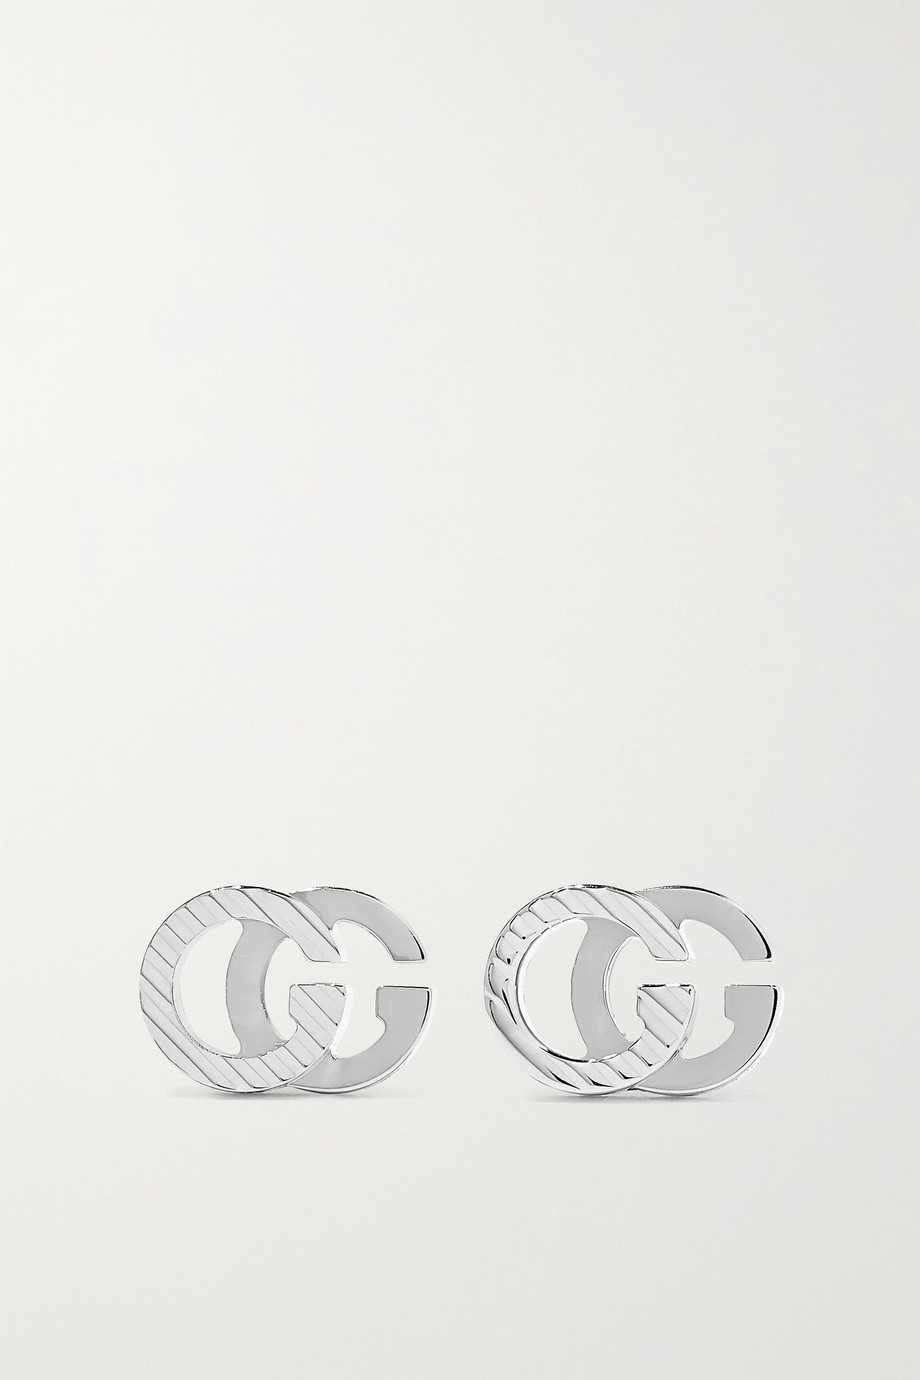 GUCCI GG Running 18-karat white gold earrings